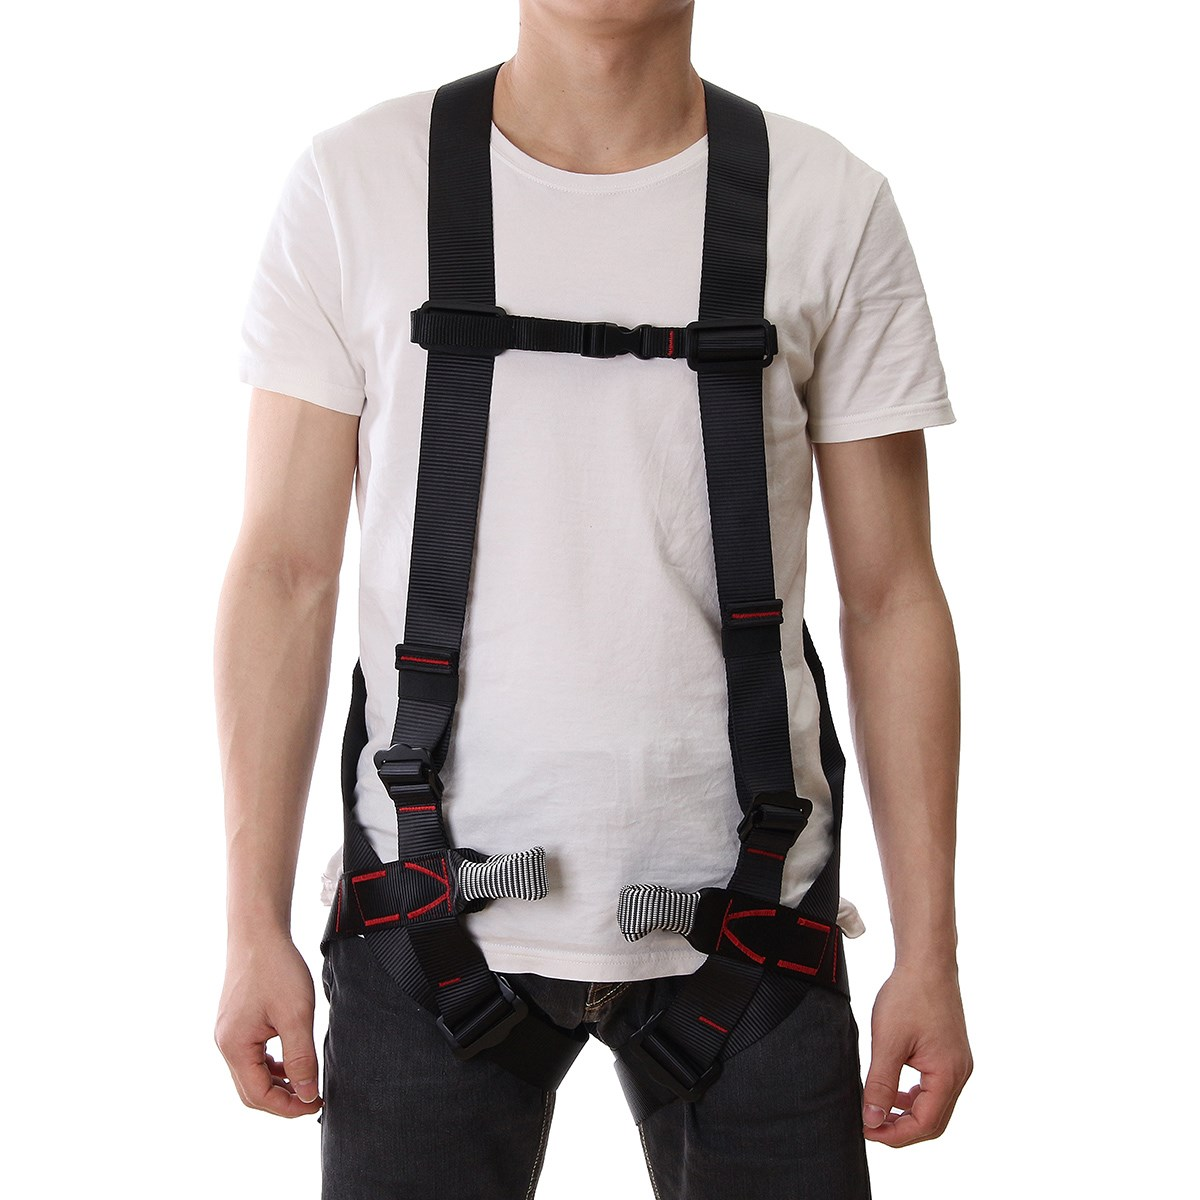 Safurance Outdoor Climb Belt Equipment Safety Harness